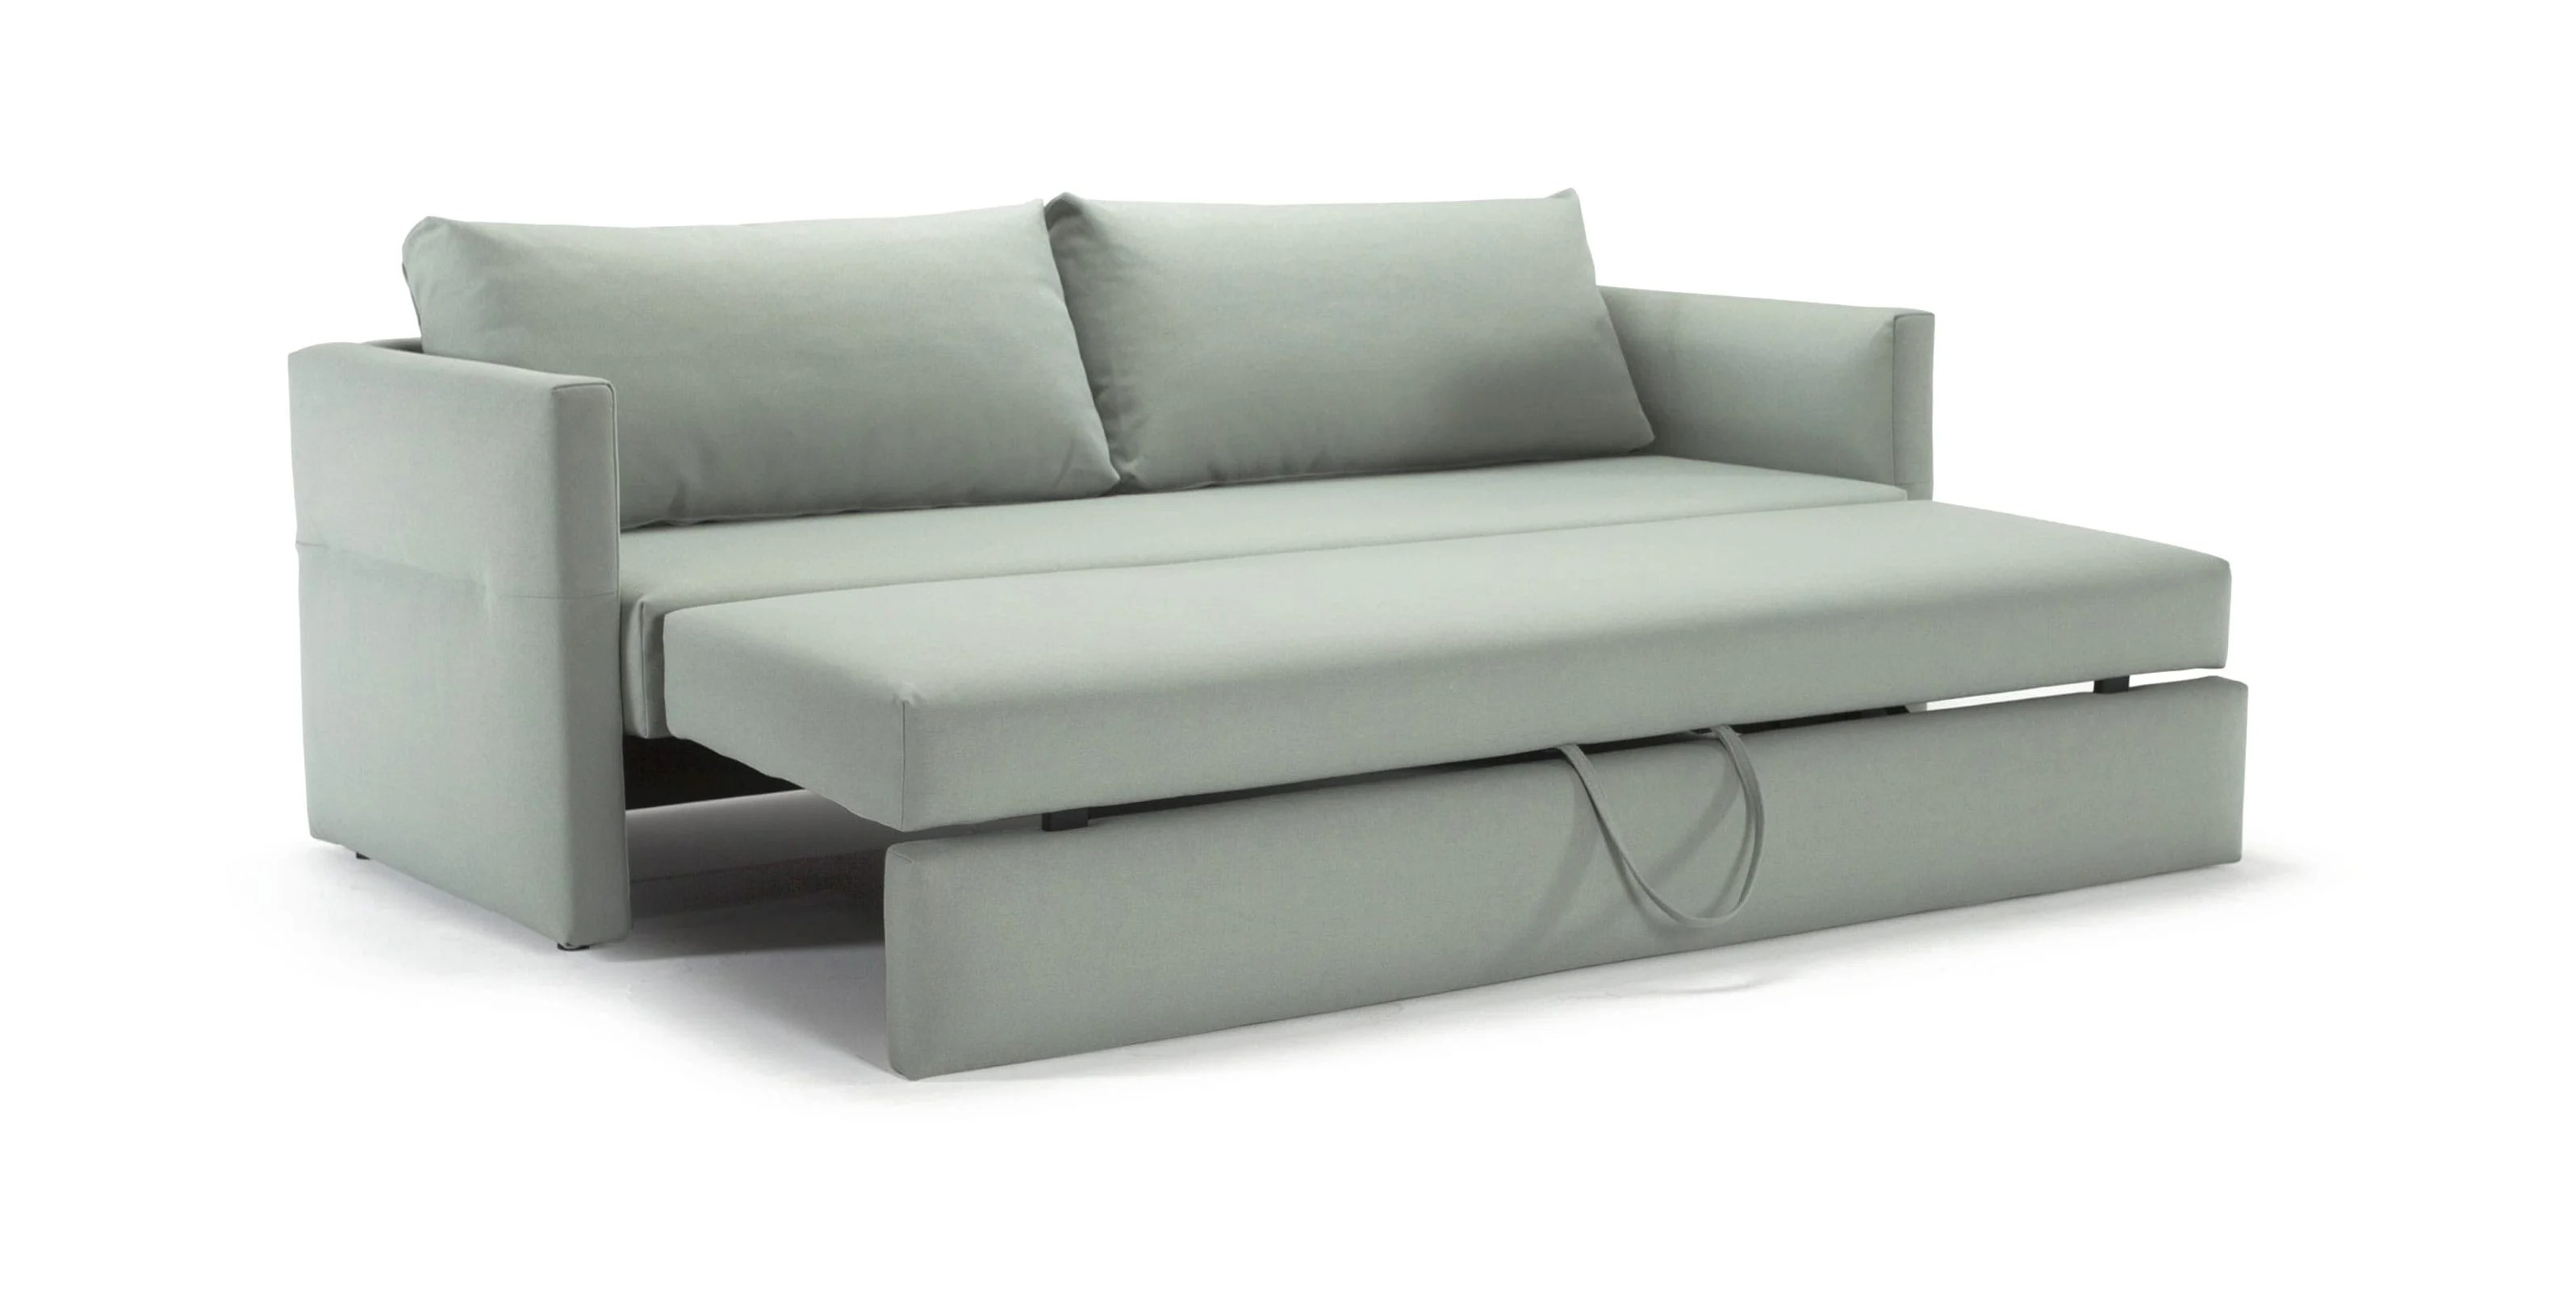 Sofa Bed For Sale Toronto Toke Sofa Bed Full Size Coastal Nordic Sky By Innovation